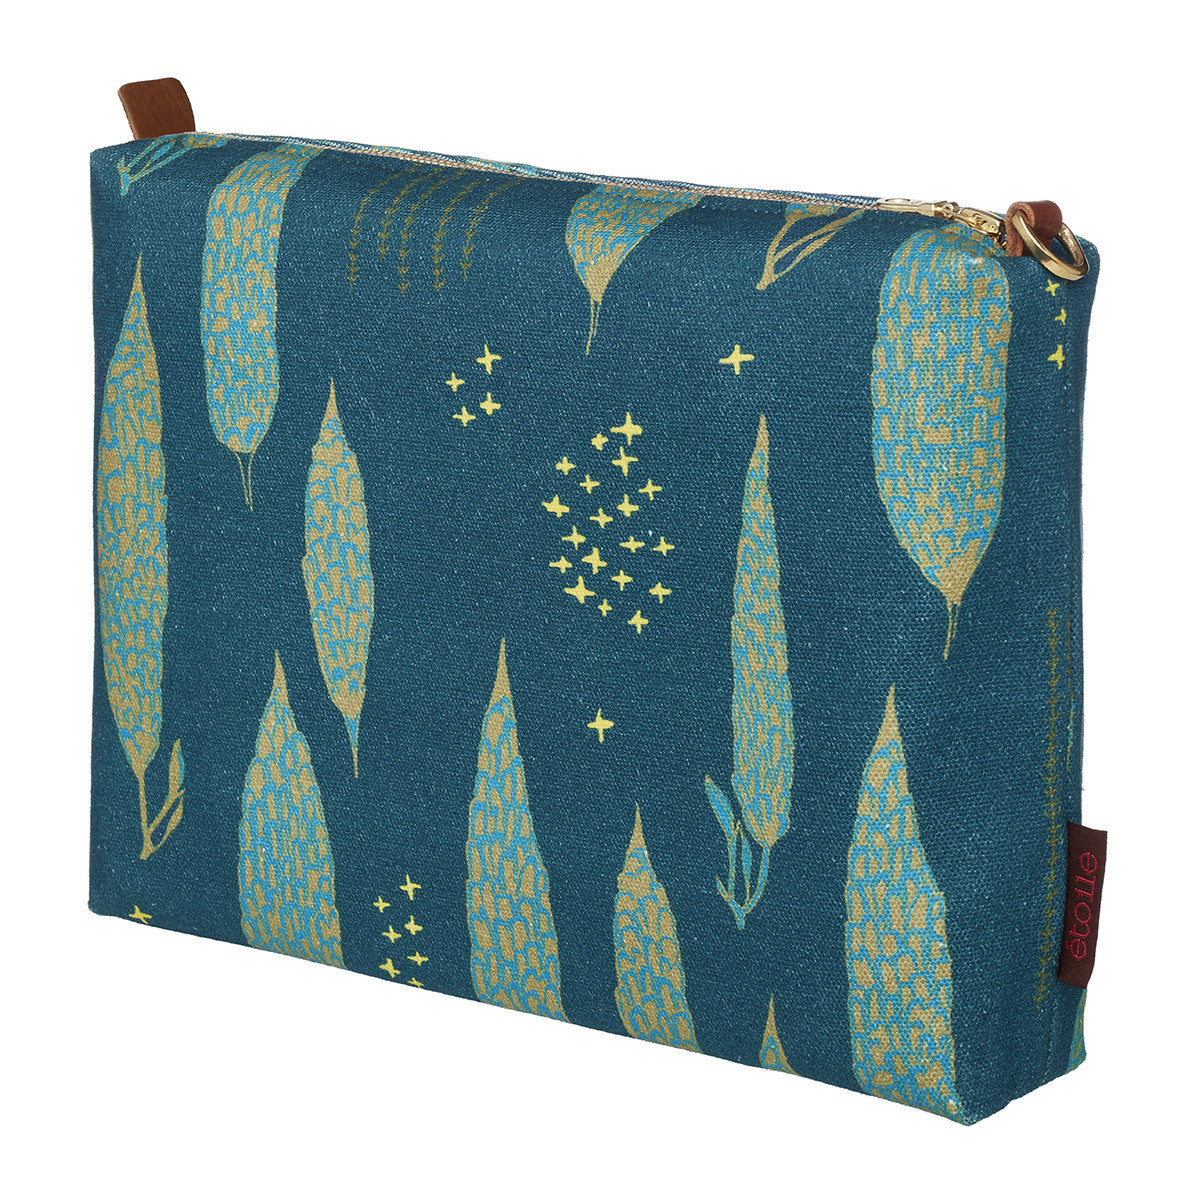 Graphic Tree Pattern Cotton Canvas Vanity Travel Bag in Dark Petrol Blue, Turquoise & Antique Moss Green Perfect for all your beauty and cosmetic needs while travelling or at home Ships from Canada (USA)